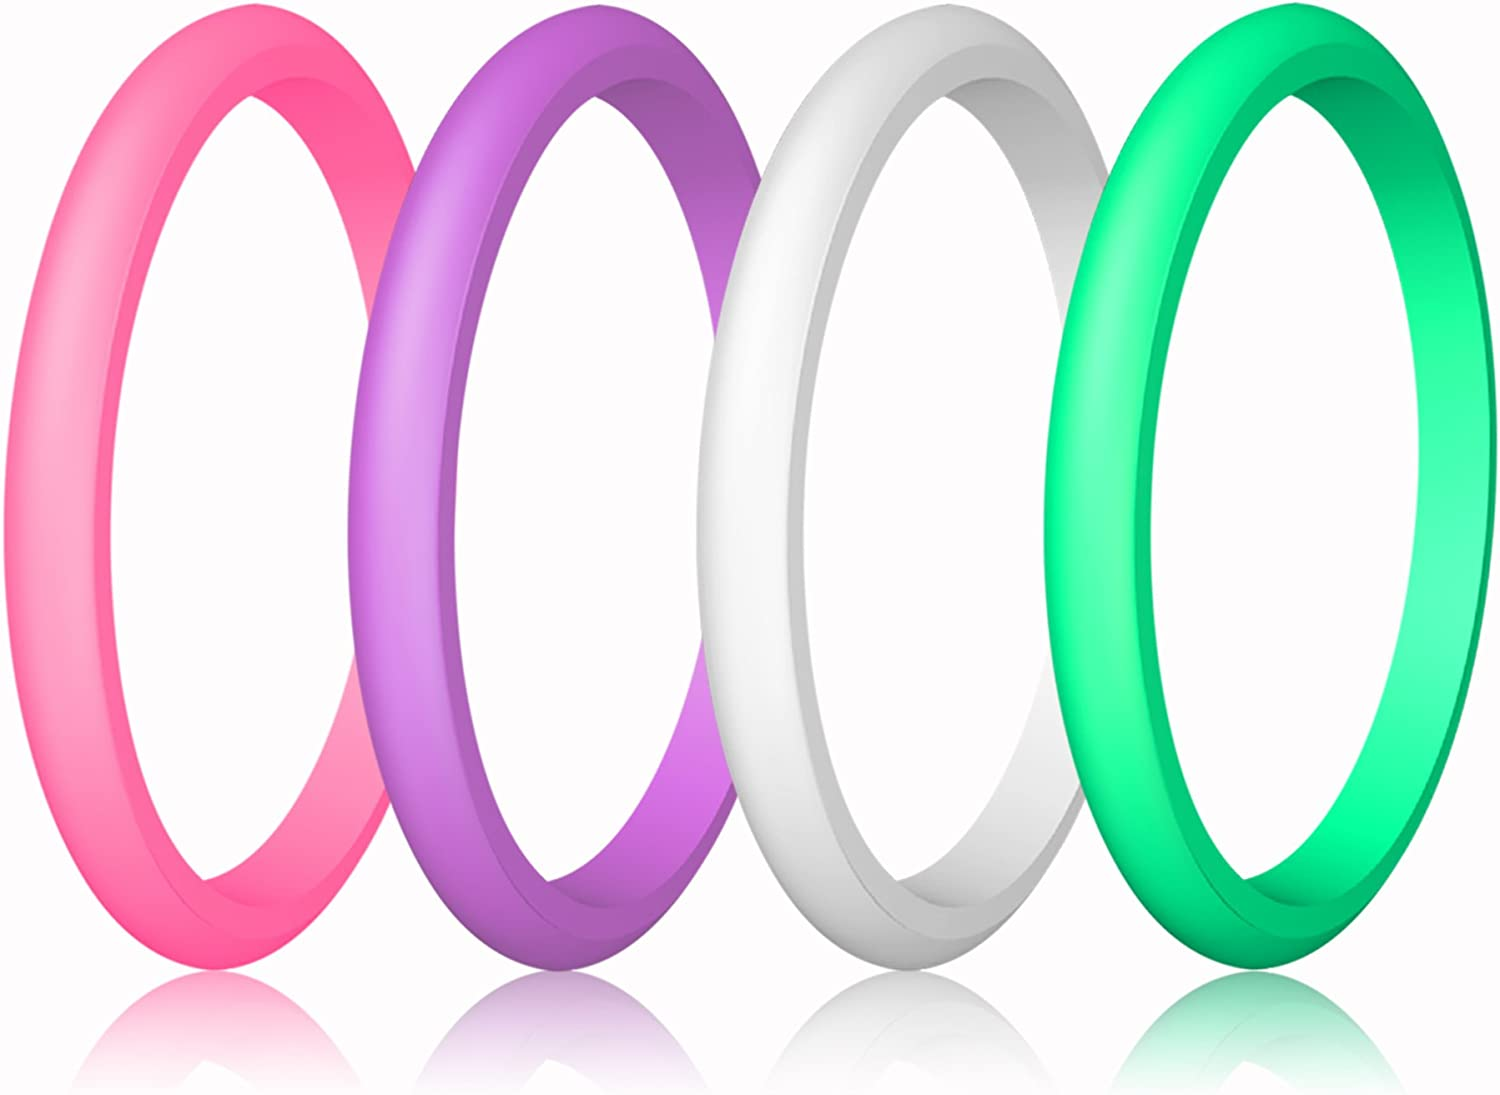 Couple Souvenir and Outdoor Active Exercise Style-10 Rings Pack LUNIQI Silicone Wedding Ring for Men Durable Rubber Safe Band for Love